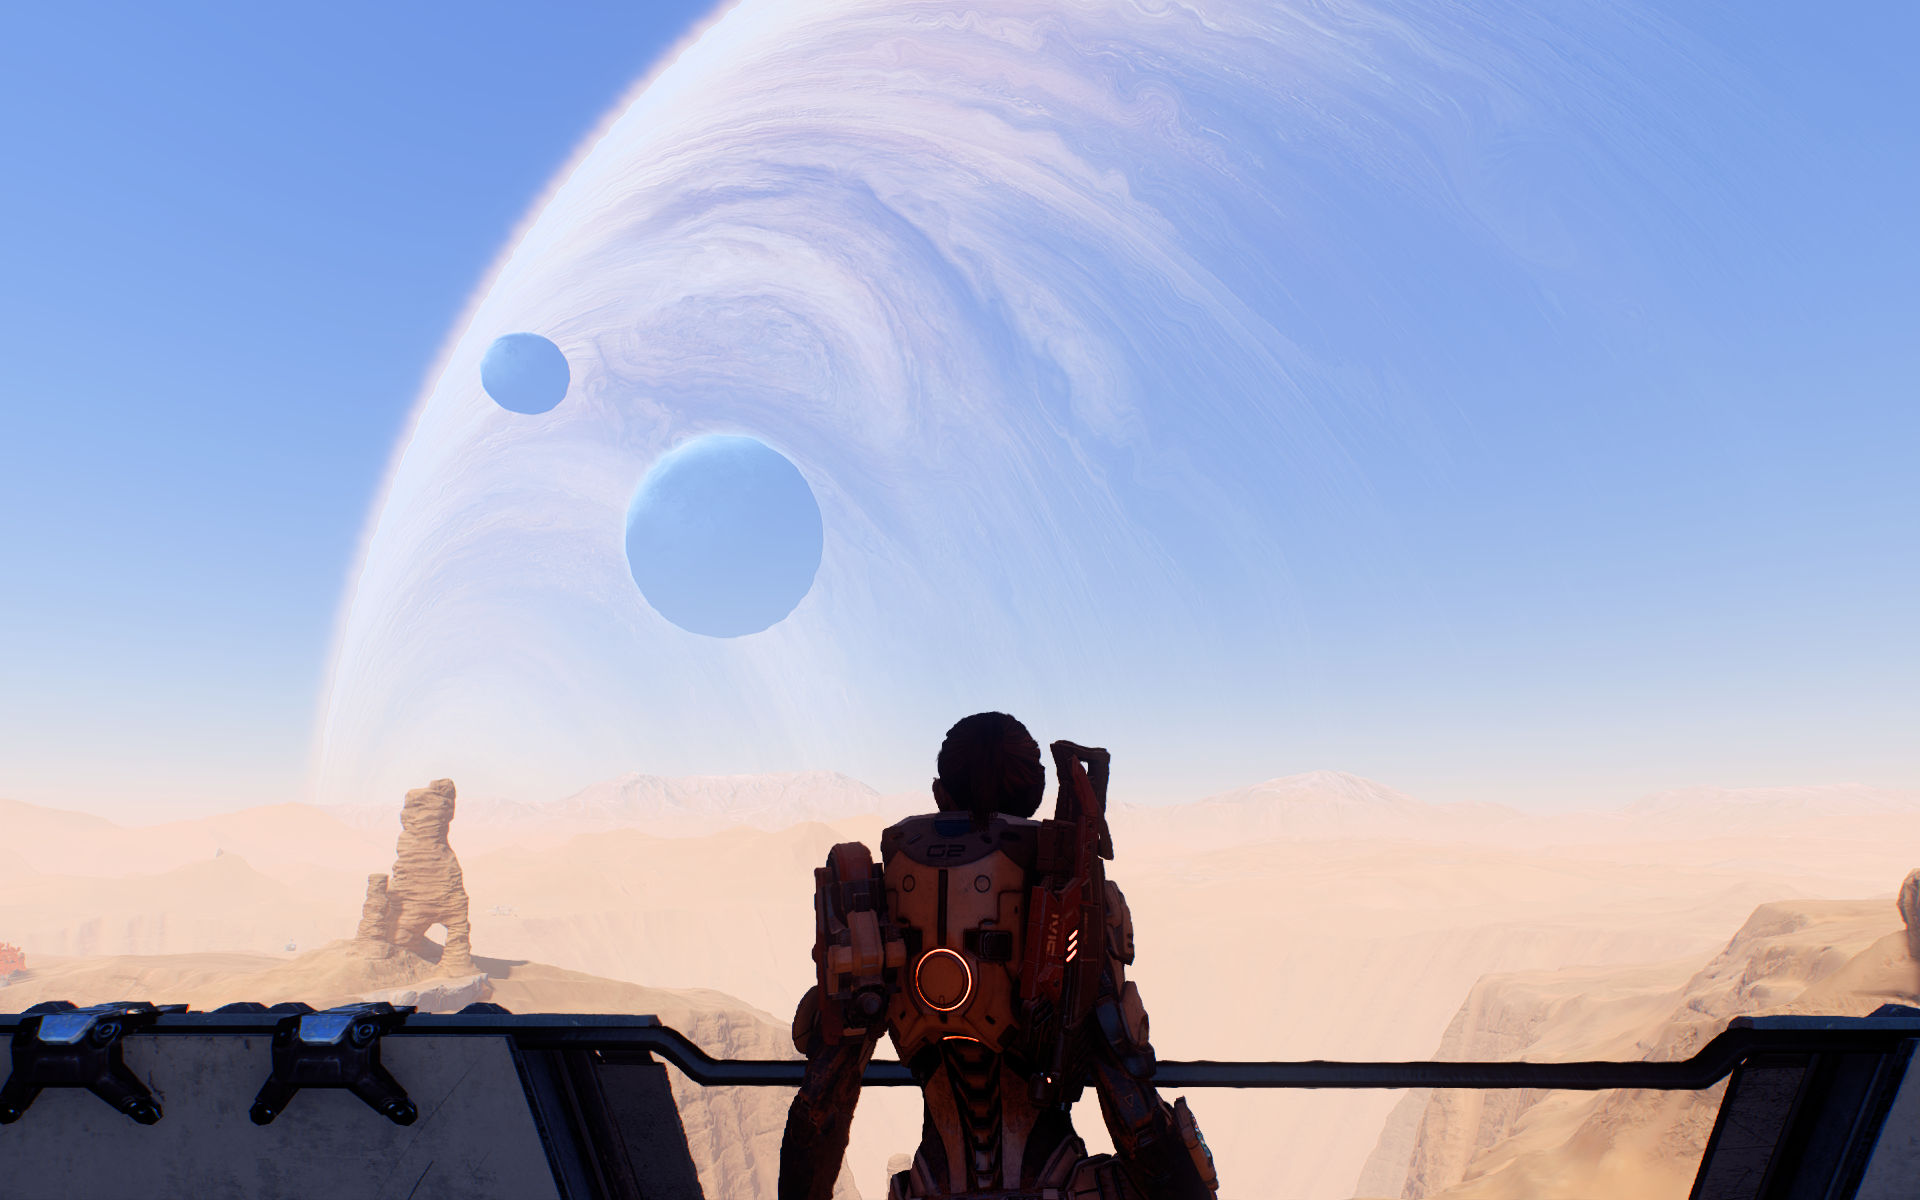 Mass Effect Andromeda Screenshot  - 21.21.15.45.png - Mass Effect: Andromeda